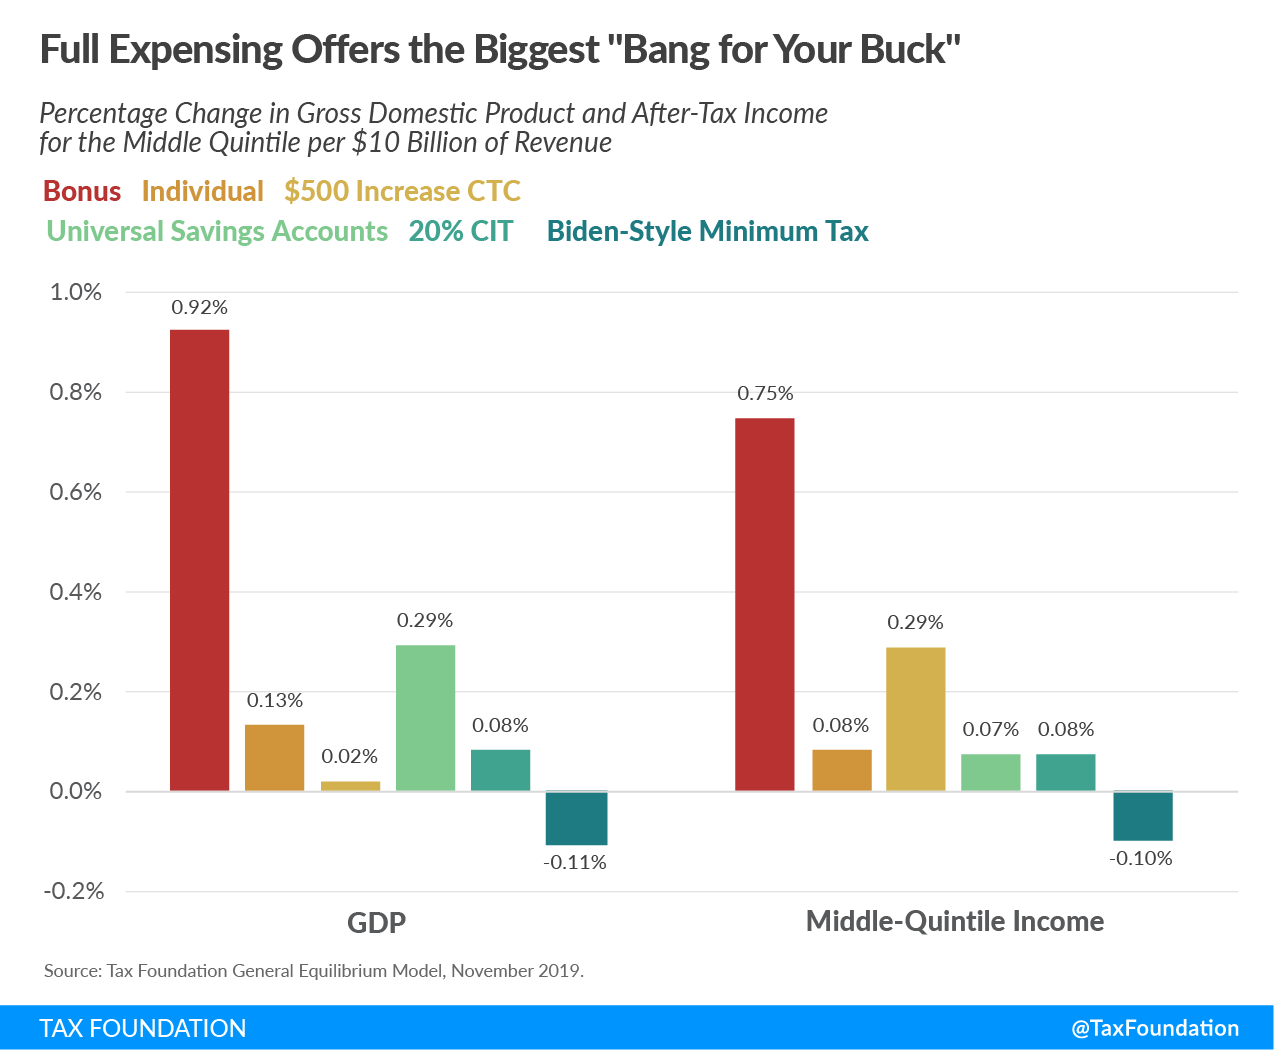 "Full expensing offers biggest ""bank for your buck"" for new tax reform options. 100 percent bonus depreciation, individual income tax cut, corporate tax increase, universal savings accounts, corporate tax cut, and Biden-style minimum income tax"